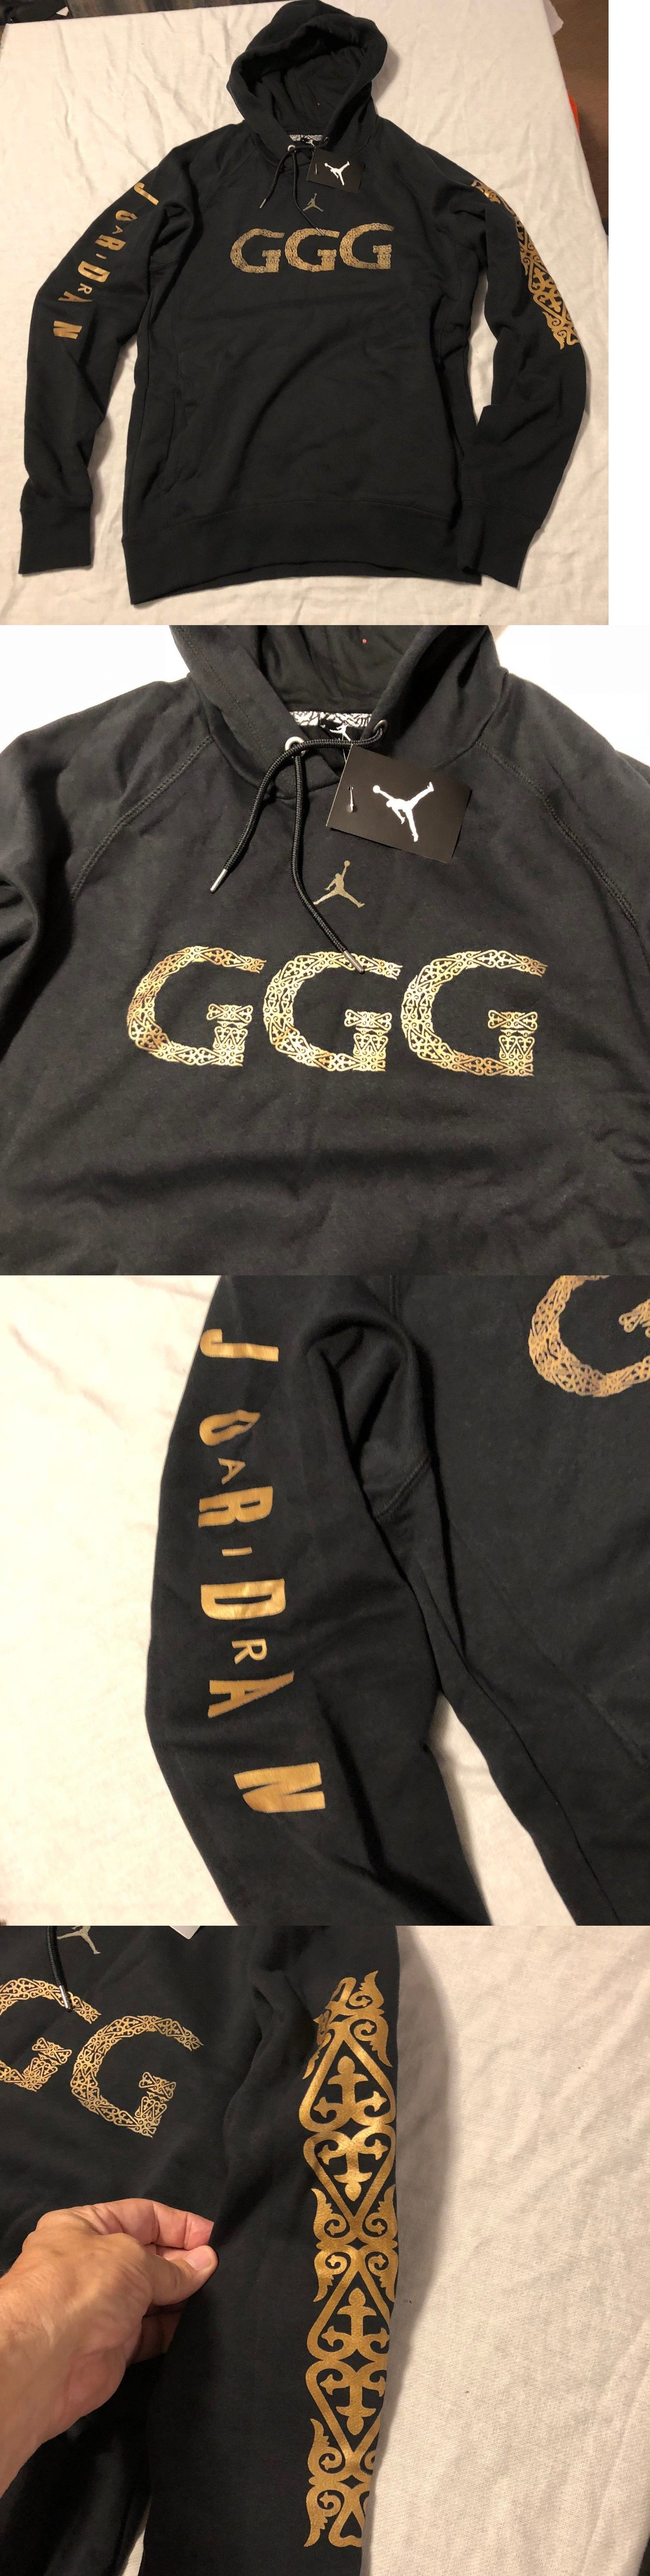 5c4832c25694 Hoodies and Sweatshirts 155183  Nike Jordan Ggg Gennady Golovkin Hoodie  Black Gold Rare Size M Aq8822 010 -  BUY IT NOW ONLY   99.99 on eBay!